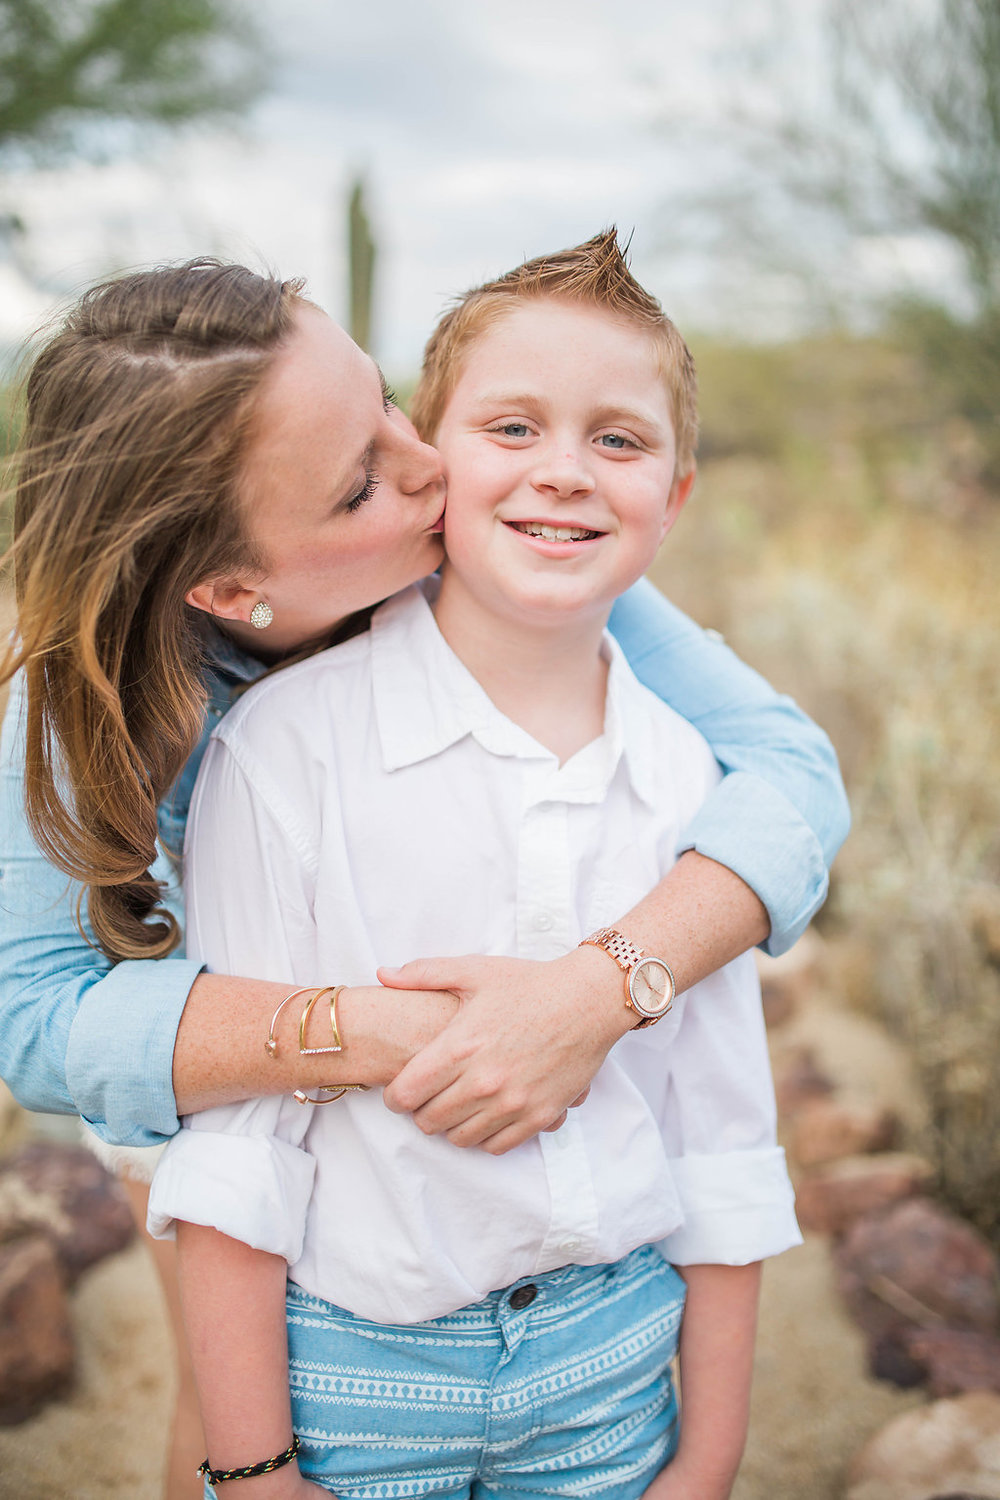 Mom and Son Photo Shoot | Arizona Session | Single Mom | Mom and Son | Family Photo Session | Glendale, Arizona | Photography Posing Techniques | How to Pose Your Clients | Kiss on Cheek | Fun Posing